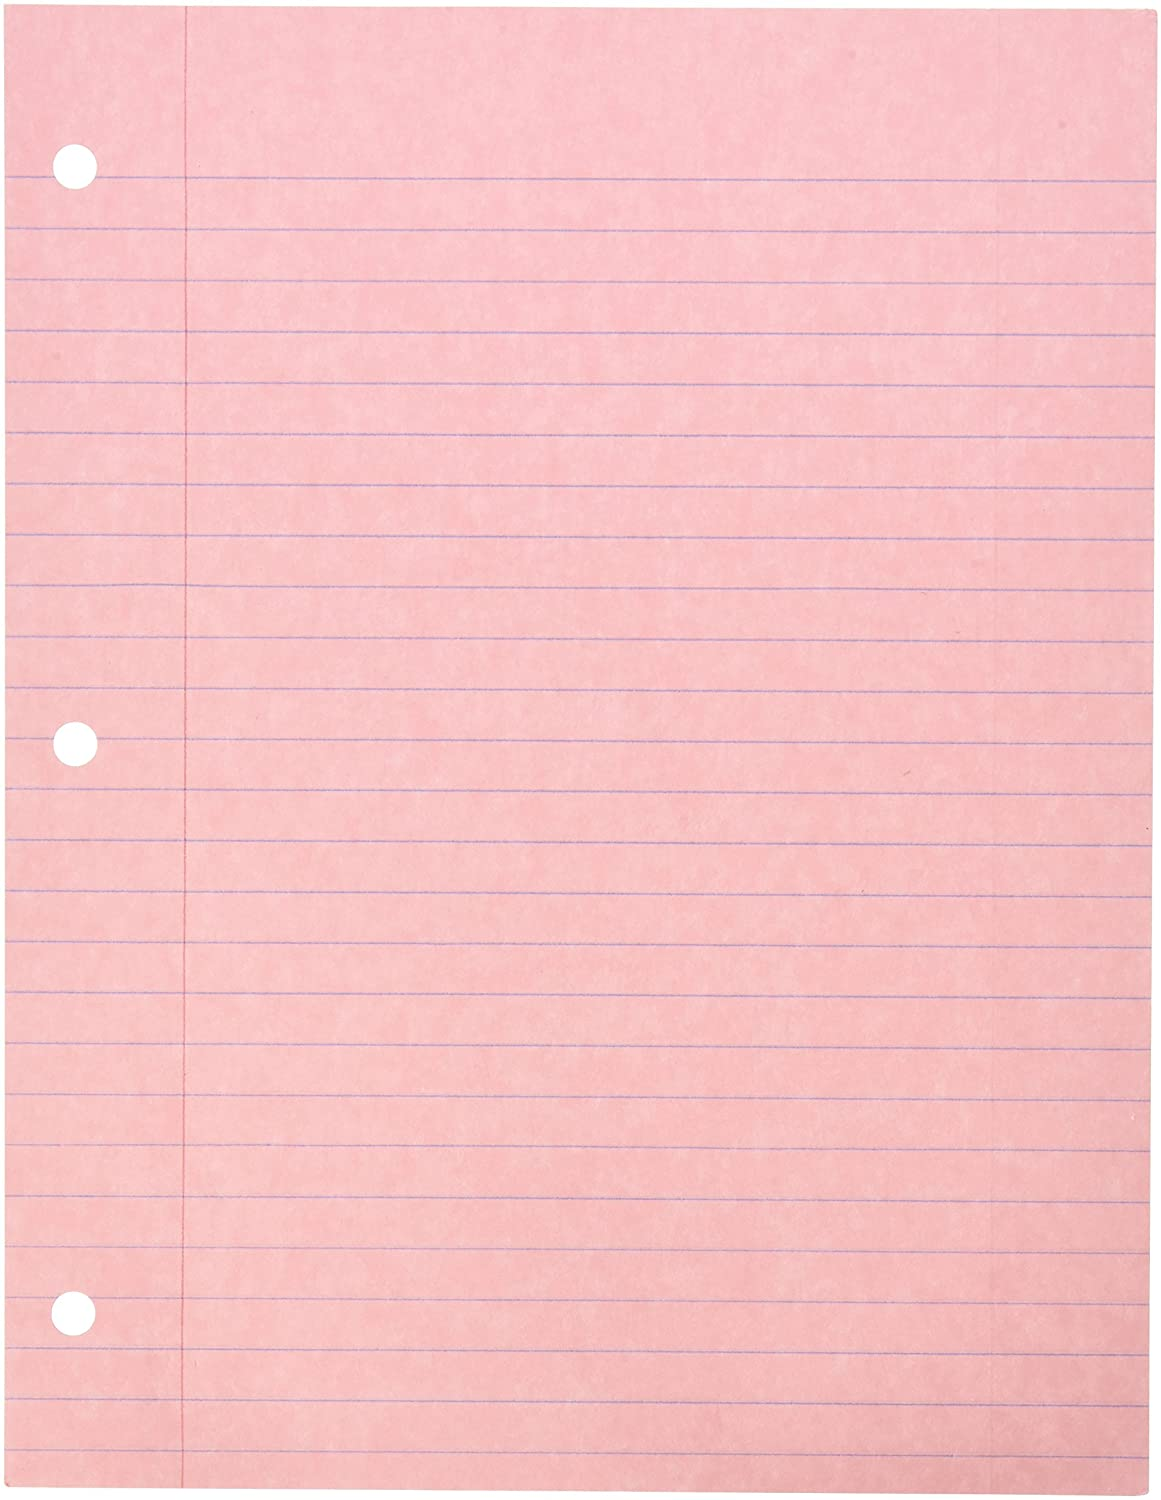 School Specialty 087155 3-Hole Punched Notebook Filler Paper, 8 1/2 x 11, Pink (Pack of 100) 8 1/2 x 11 AMERICAN PAPER CONVERTERS INC